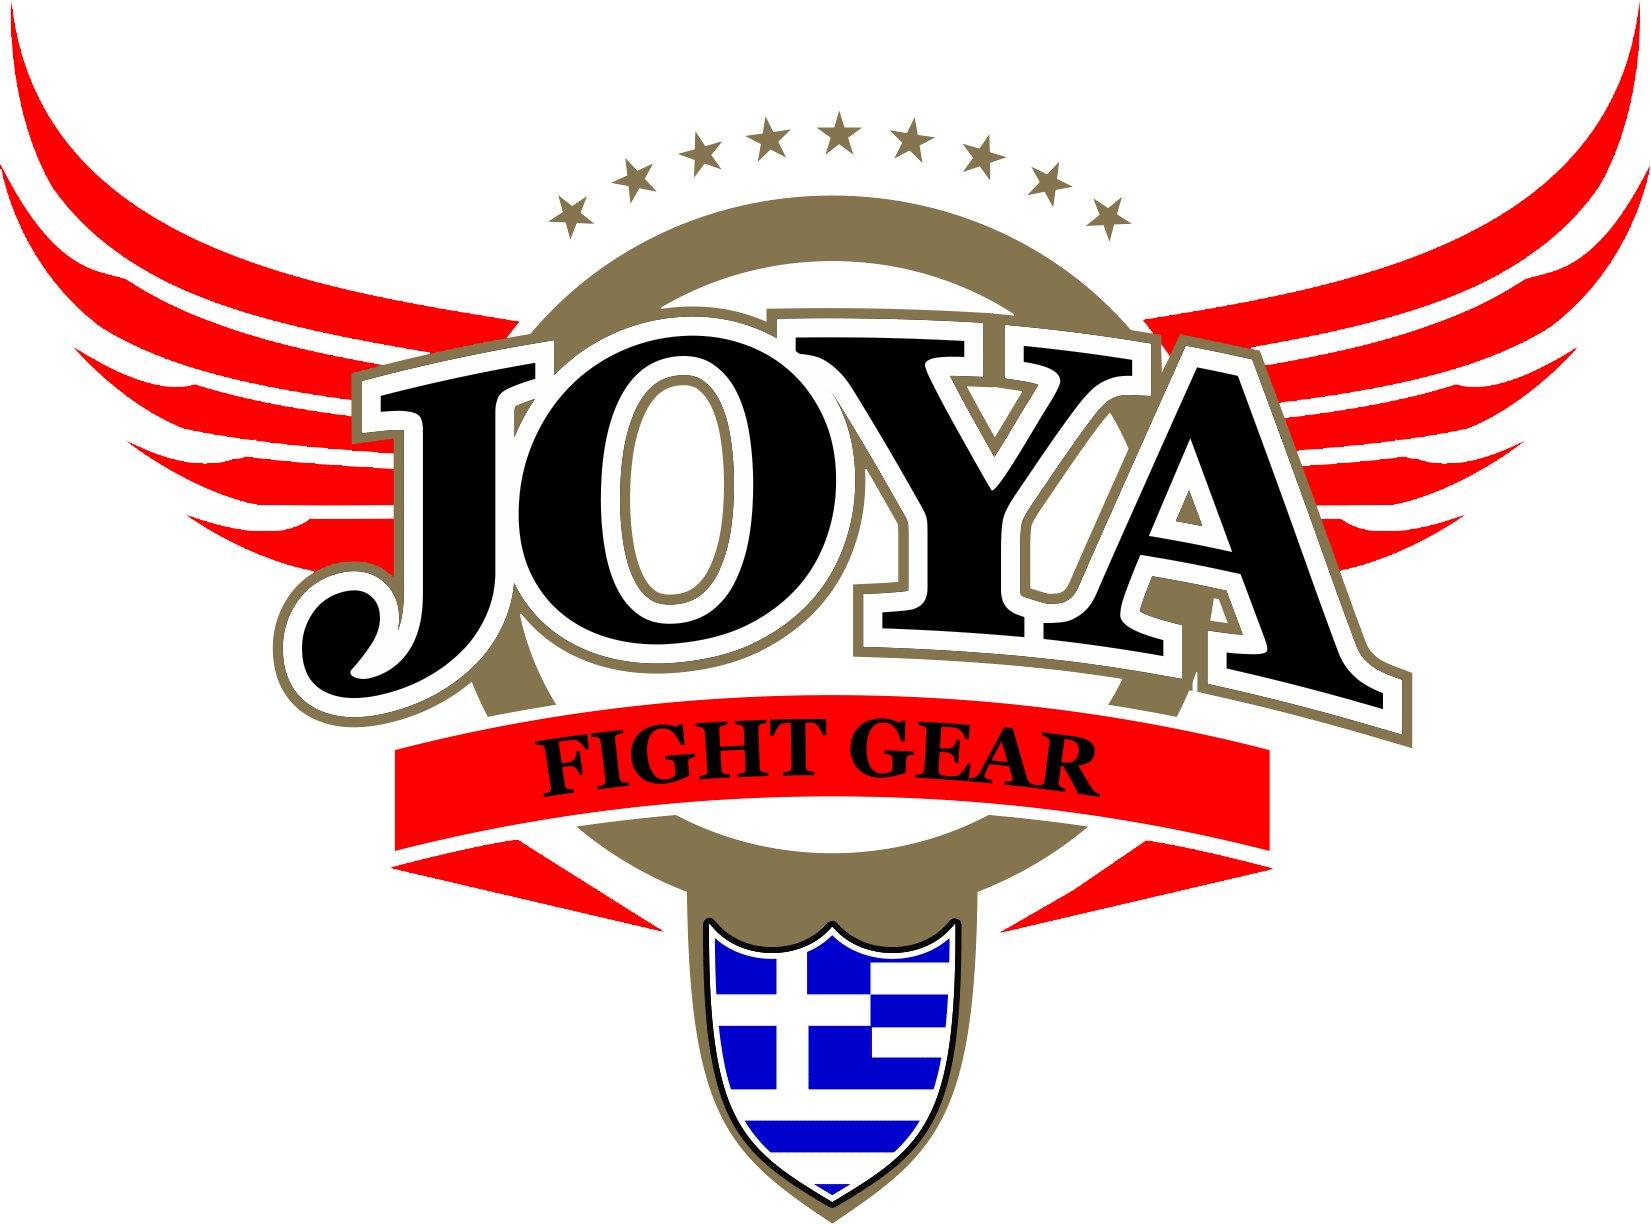 Joya Greece Logo